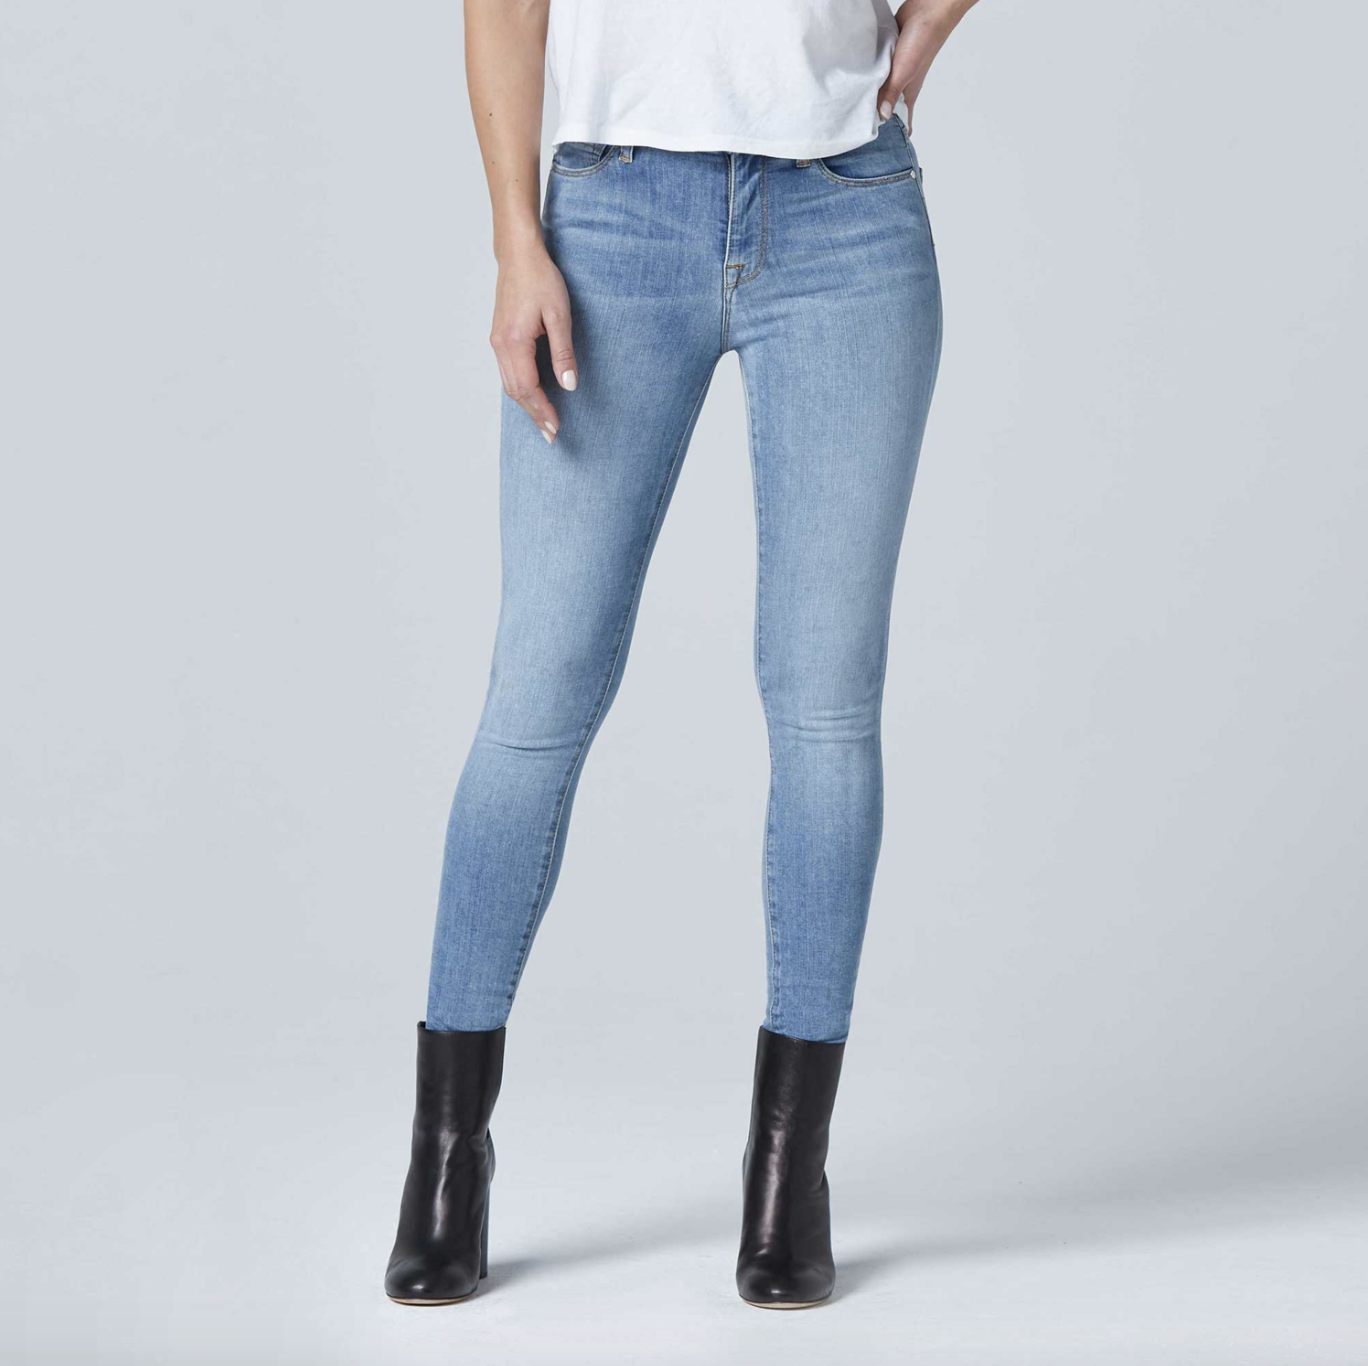 Womens High Rise Skinny Jeans in Light Indigo from DSTLD